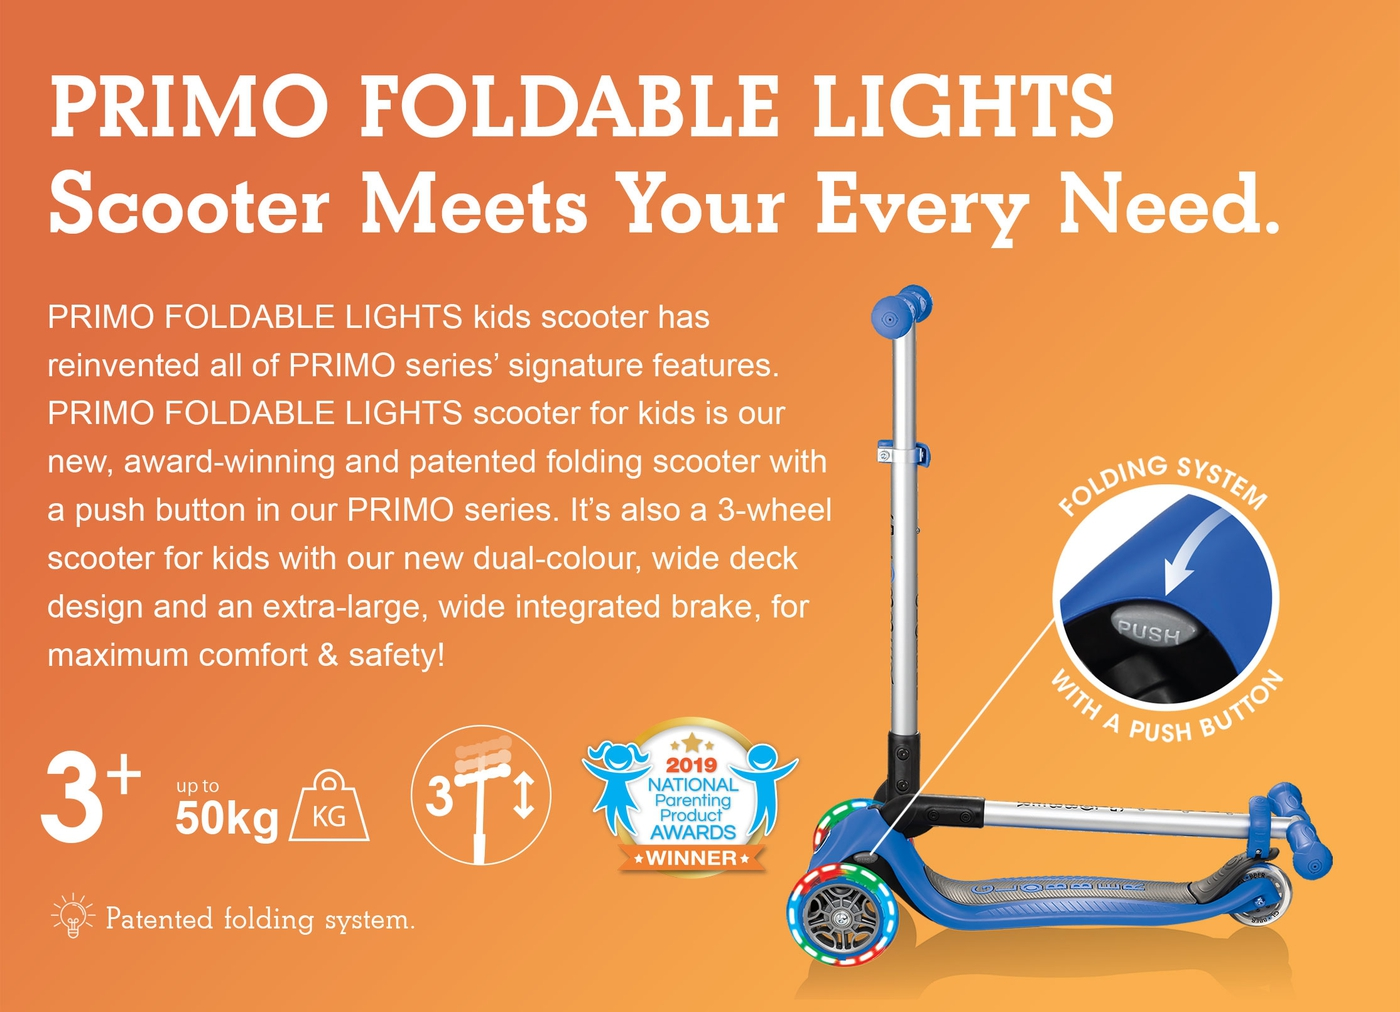 PRIMO FOLDABLE LIGHTS Scooter Meets Your Every Need.